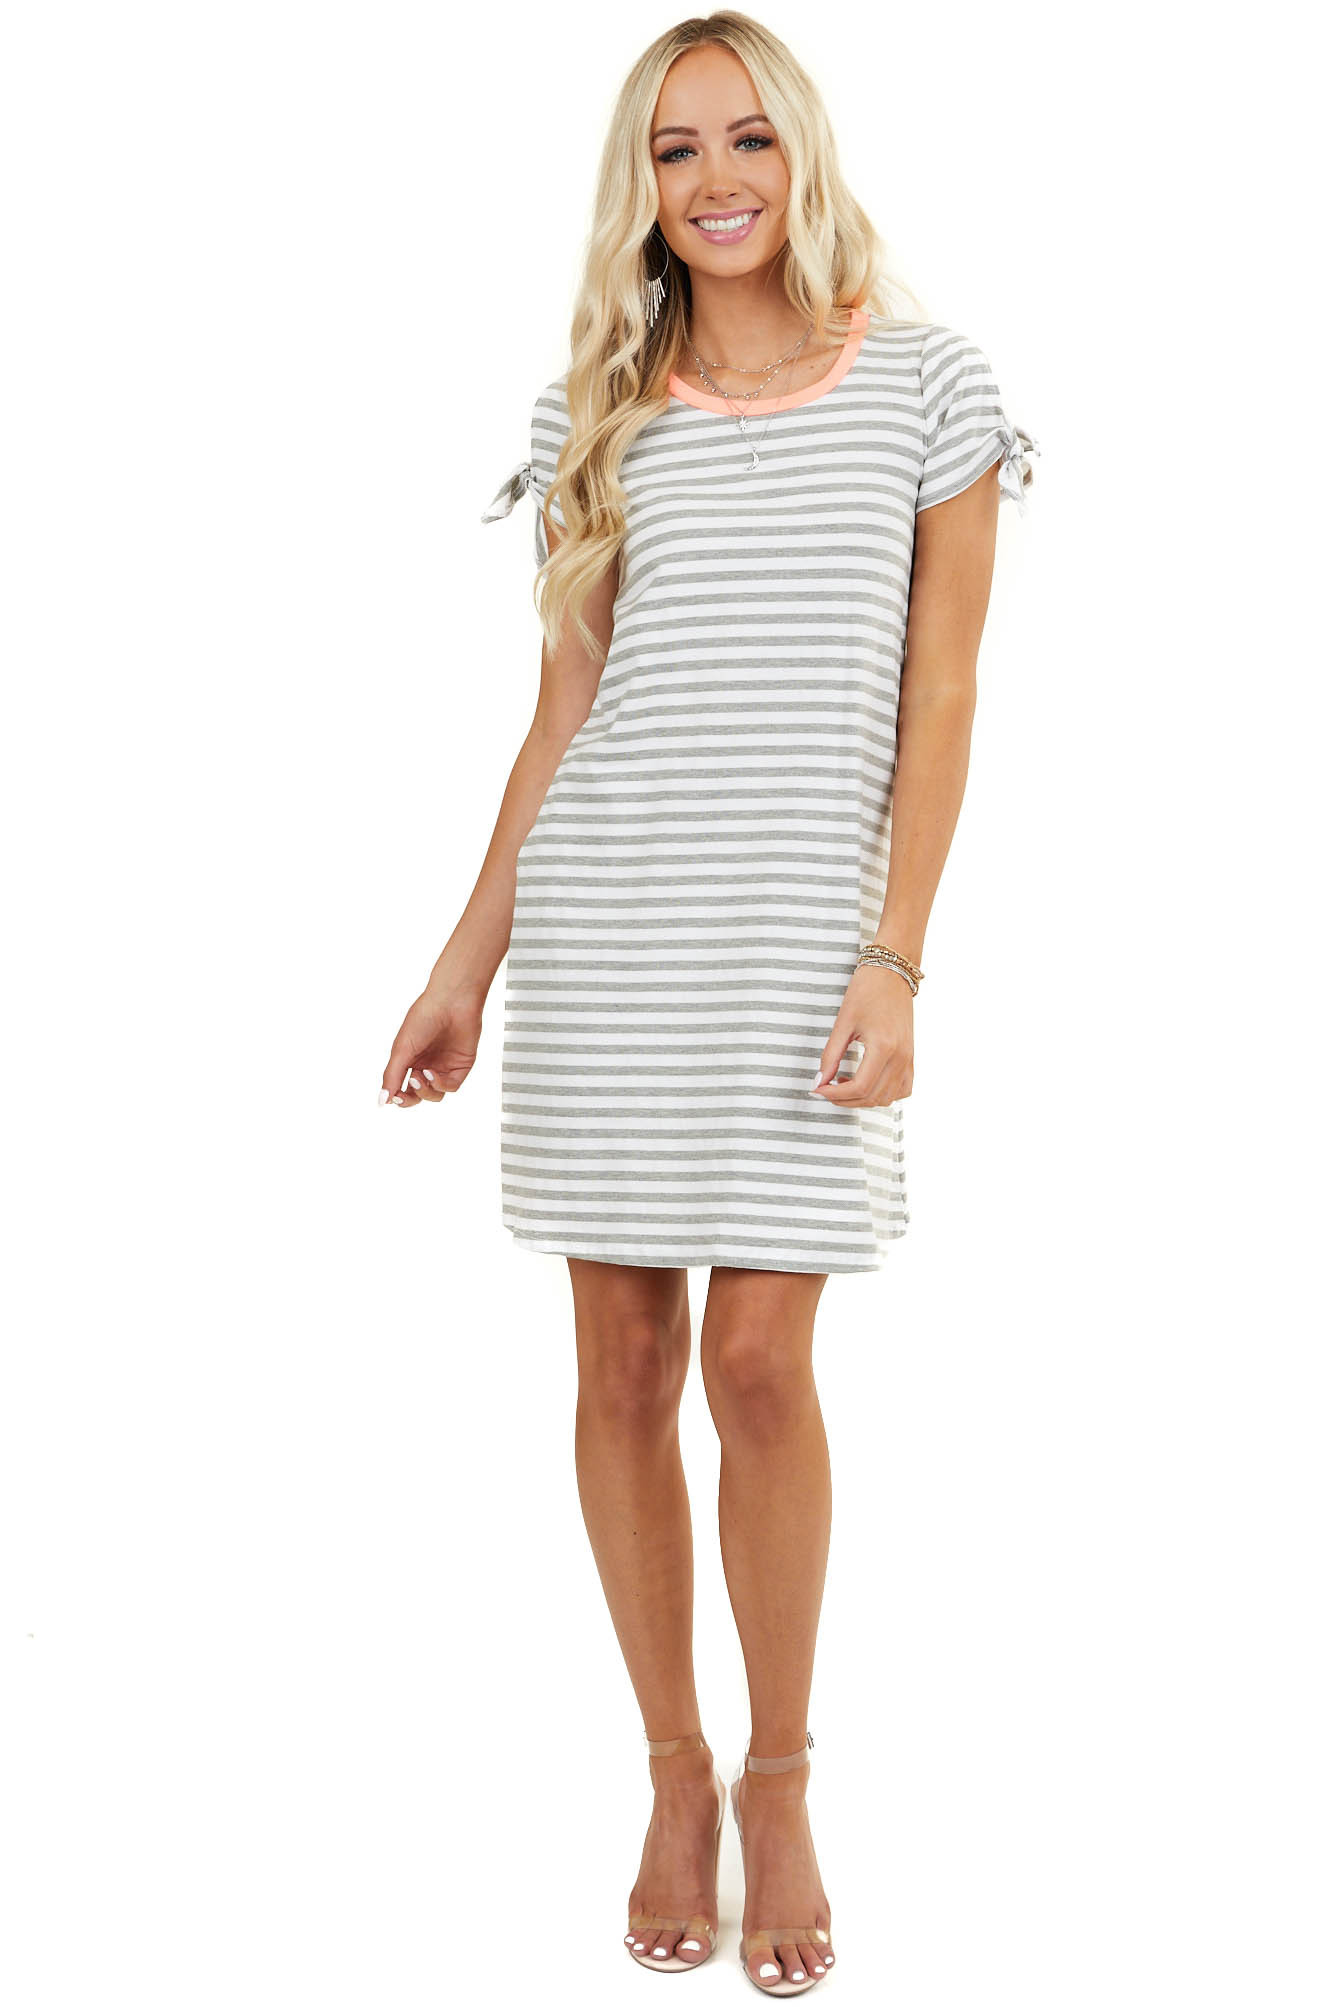 Heather Grey Striped Dress with Neon Coral Trim and Pockets